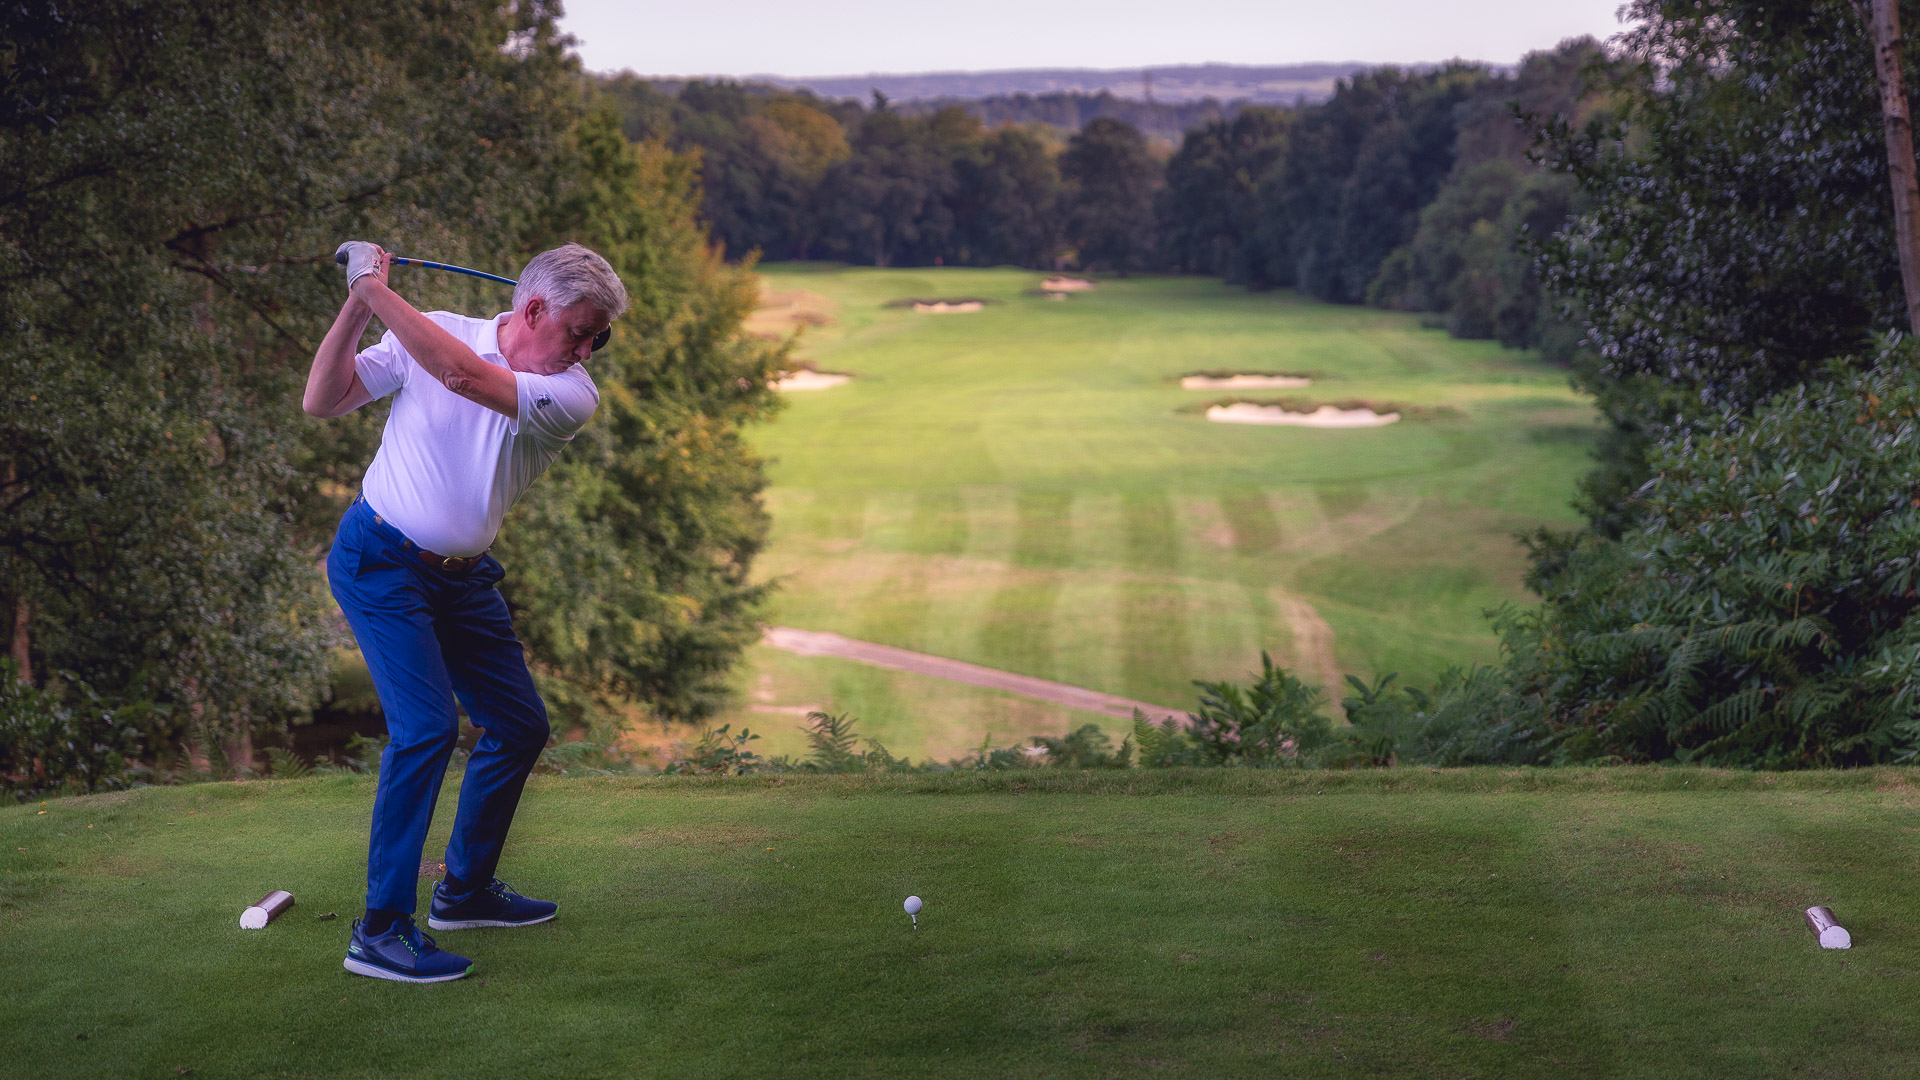 Green-Players-St-Georges-Hill-Golf-Club-1293